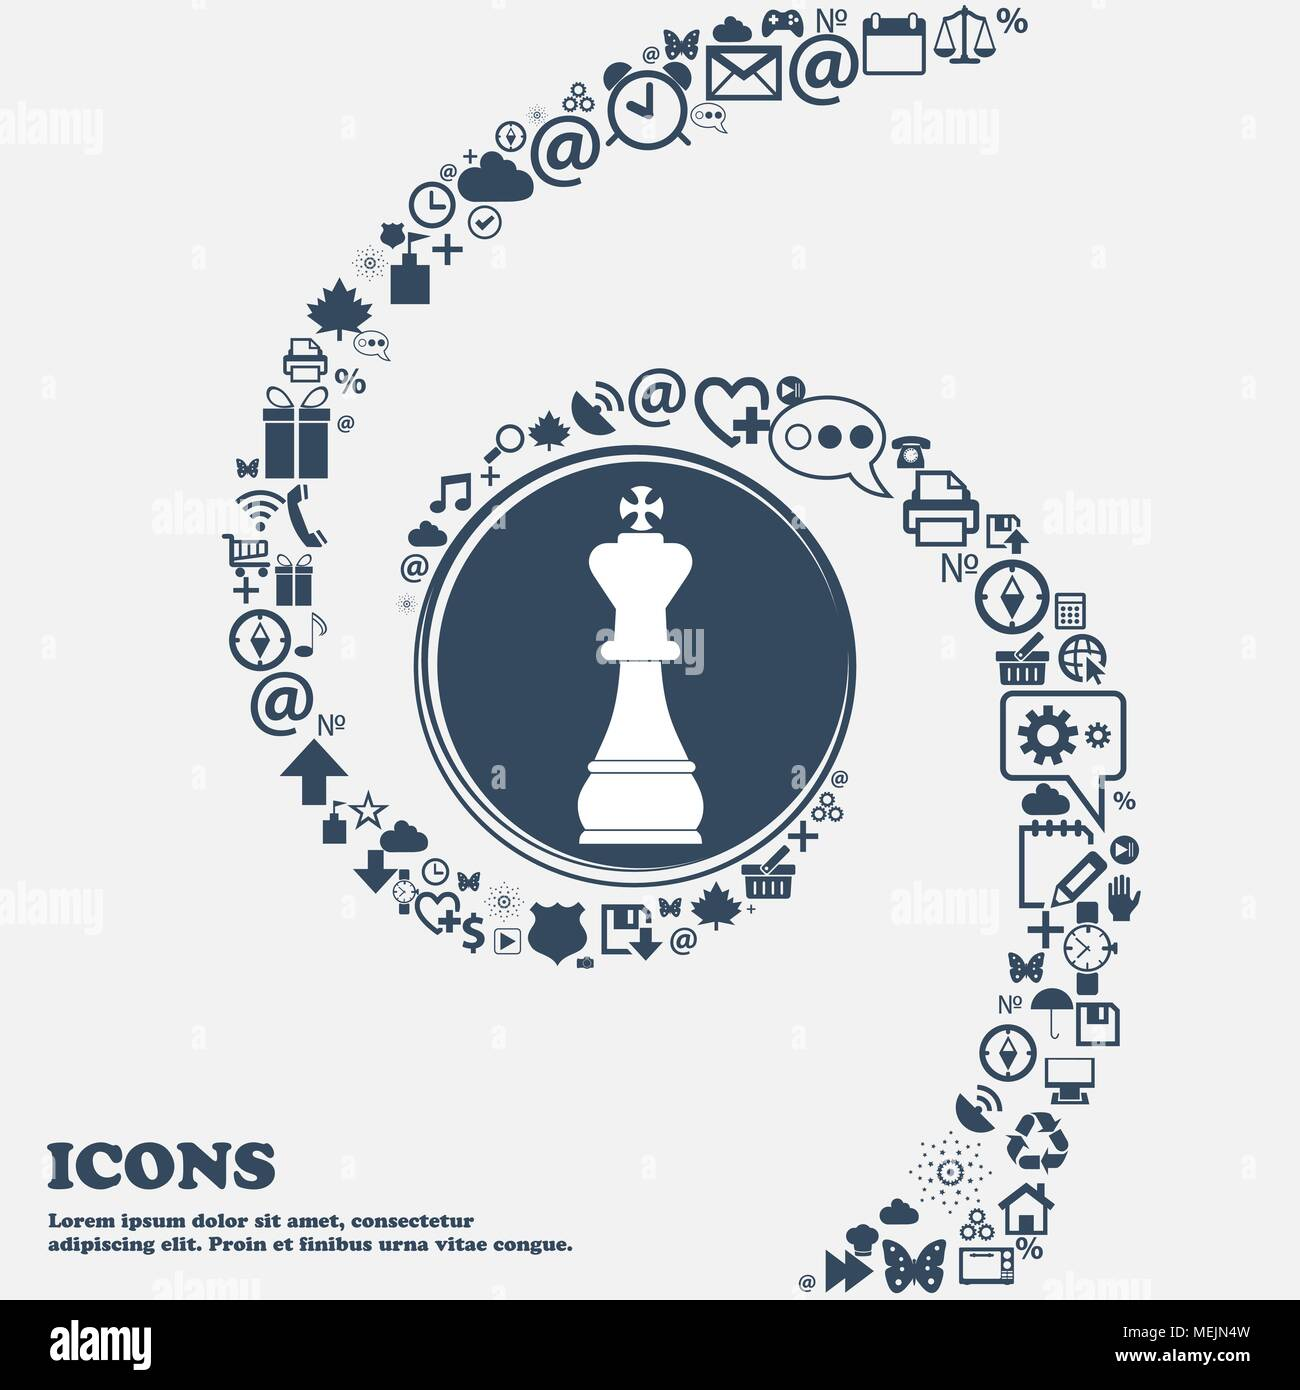 Chess King Icon In The Center Around The Many Beautiful Symbols